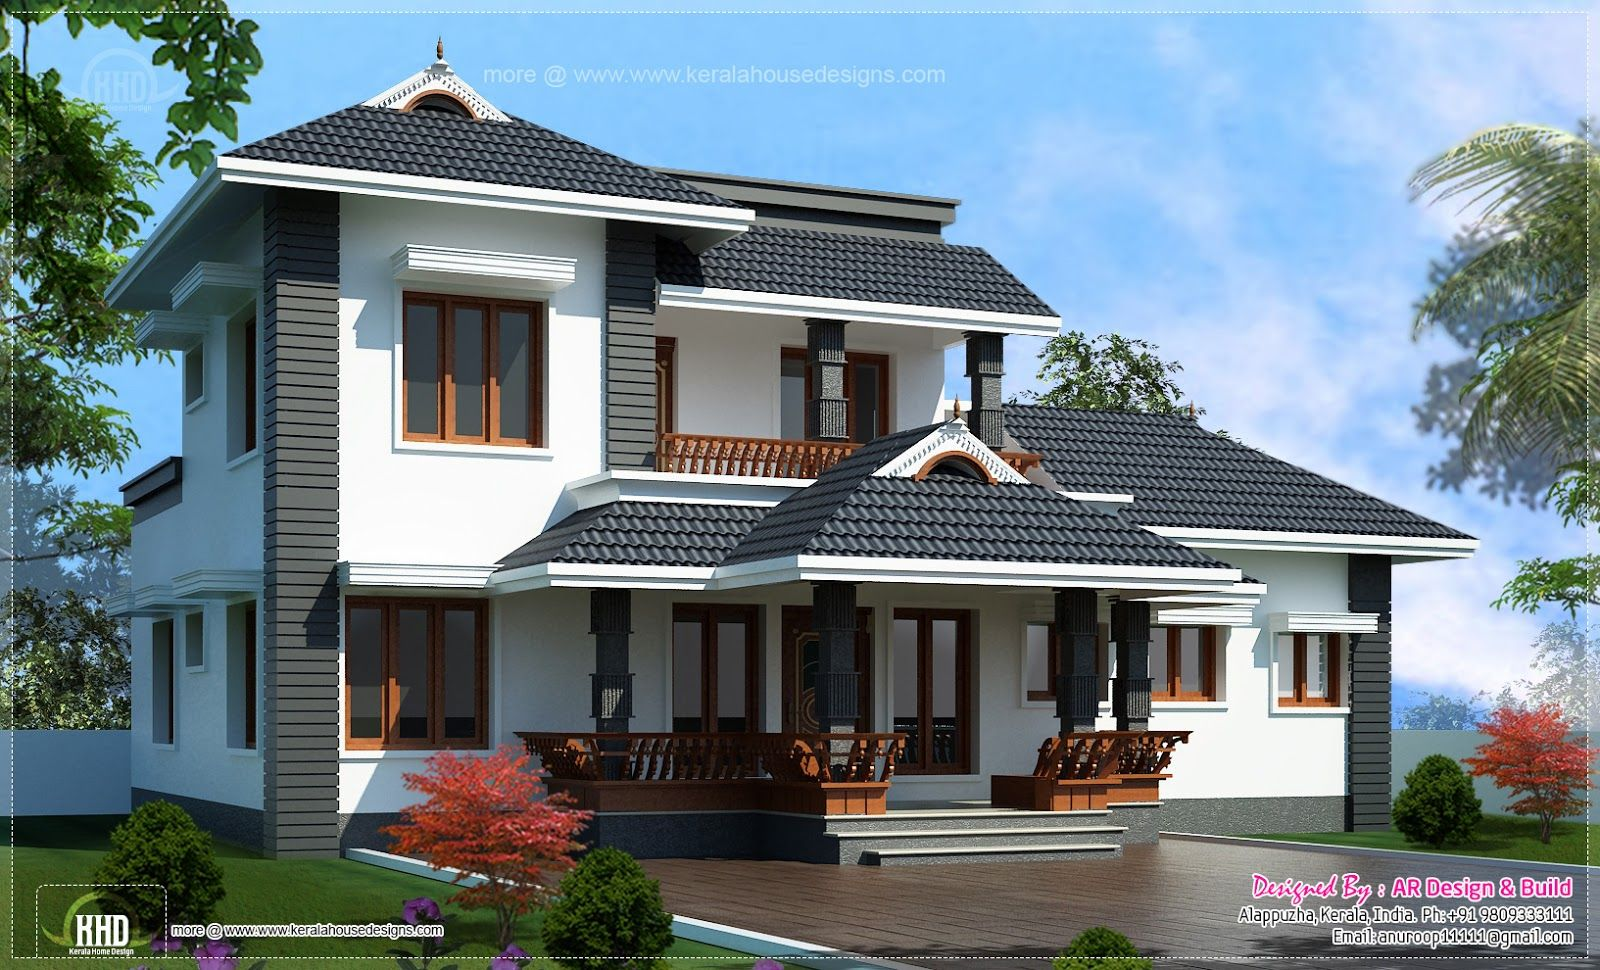 Find and save your ideas about different house designs floor plans enjoy free home structure with elegant  mind blowing story sq ft also pin by merie on architecture design rh pinterest